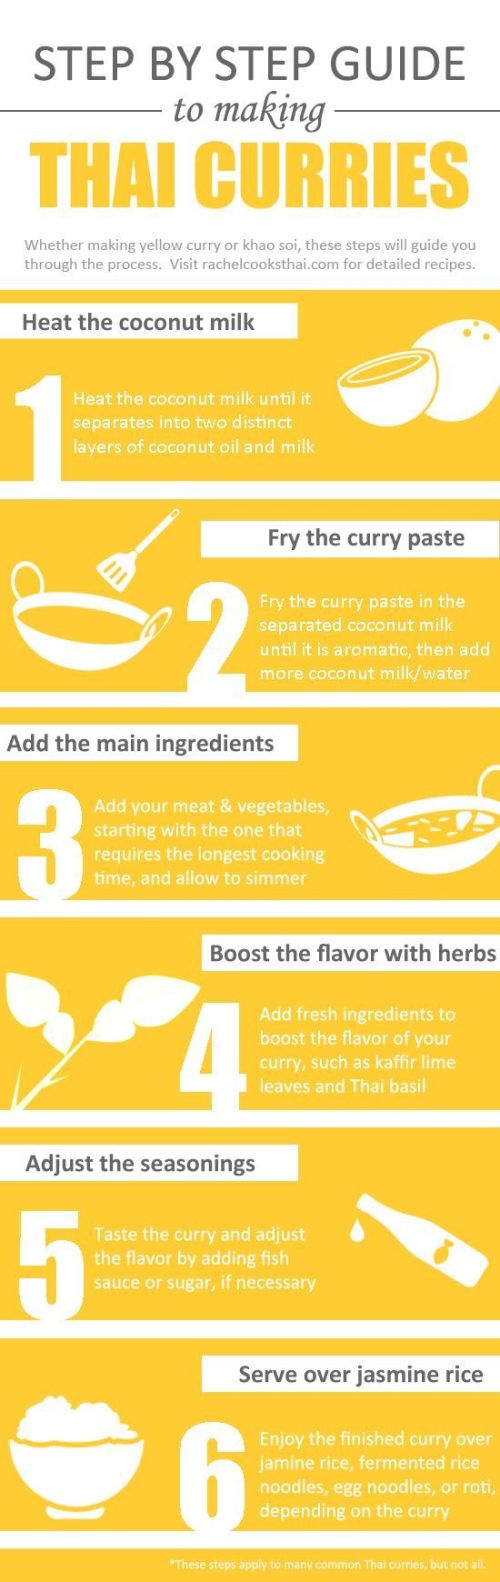 Easy healthy recipes - how to start eating healthy